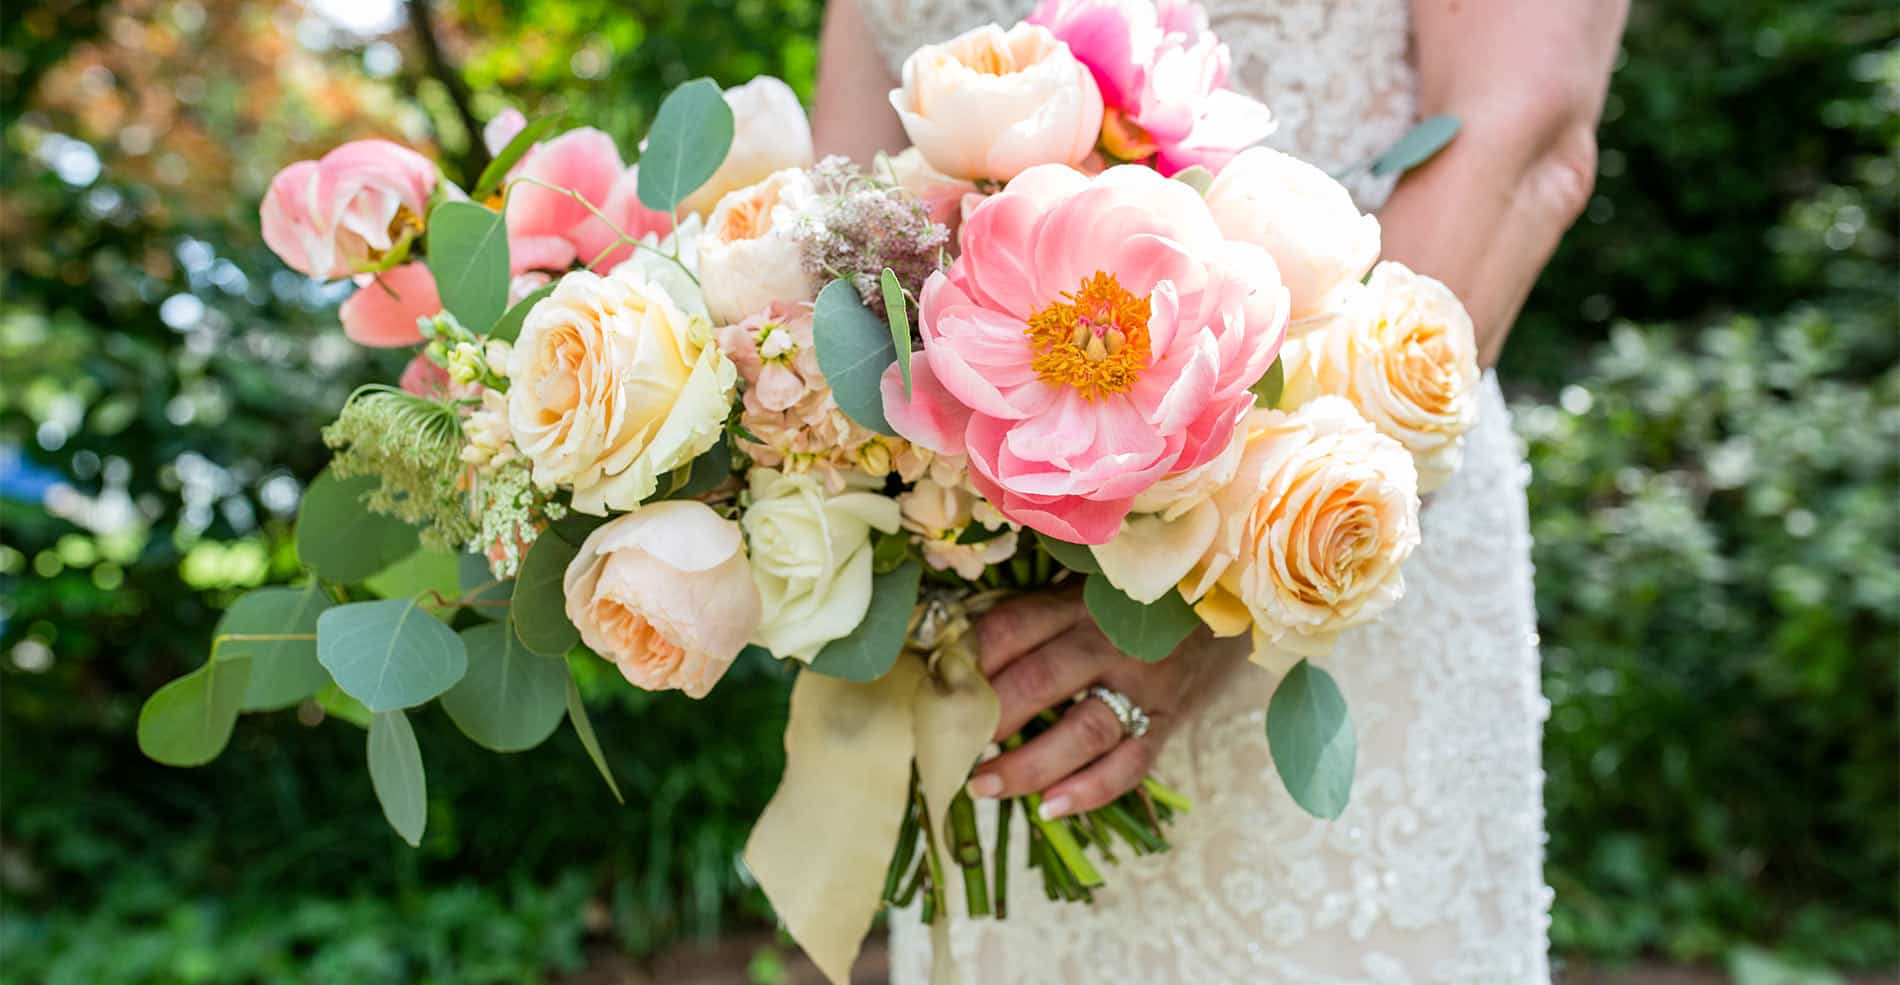 A pink wedding bouquet held by a bride, with flowers and pathway in background